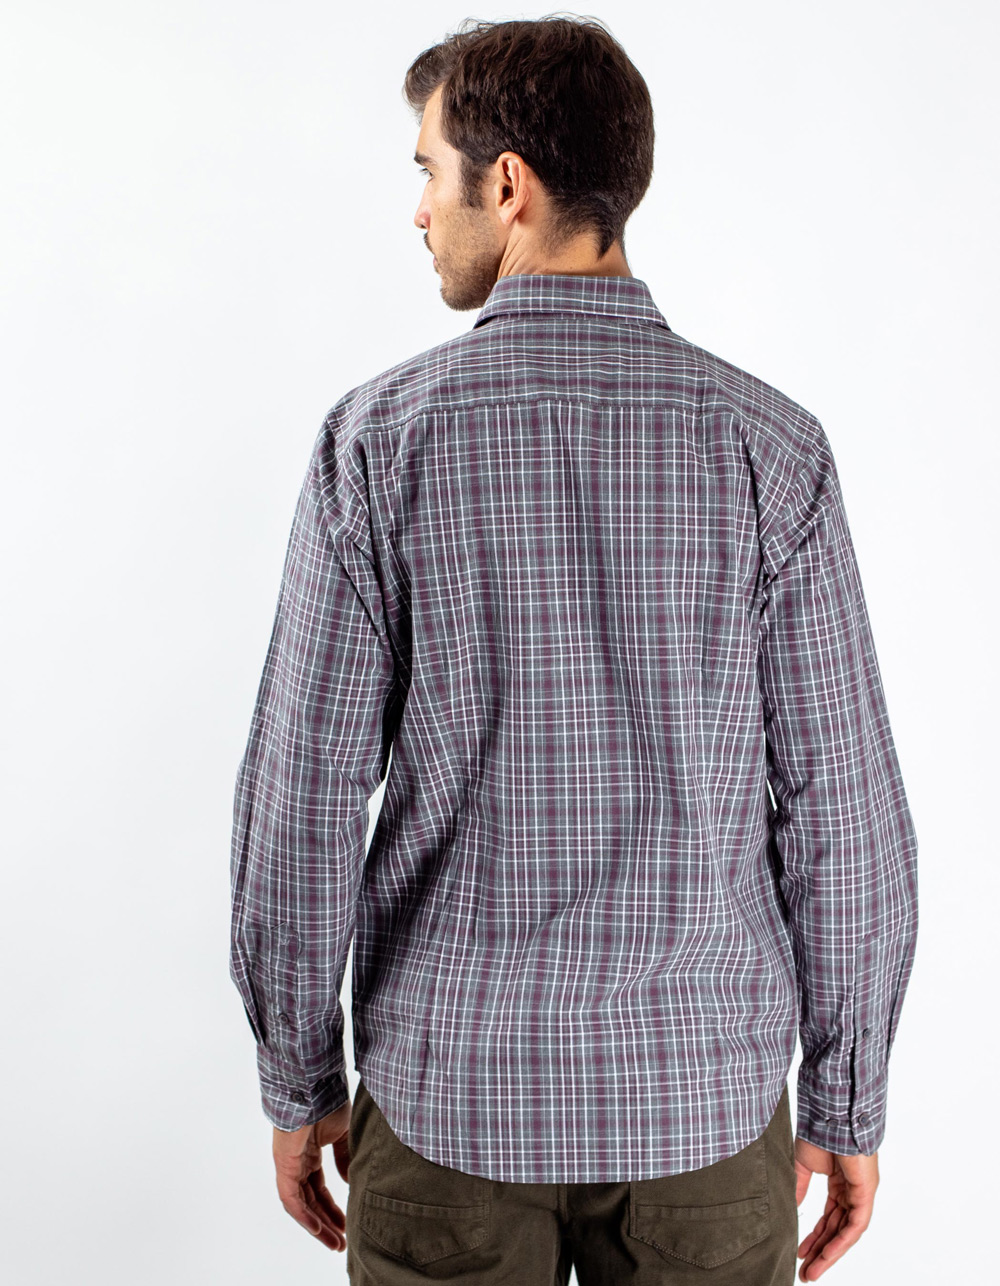 Maroon plaid shirt - Backside